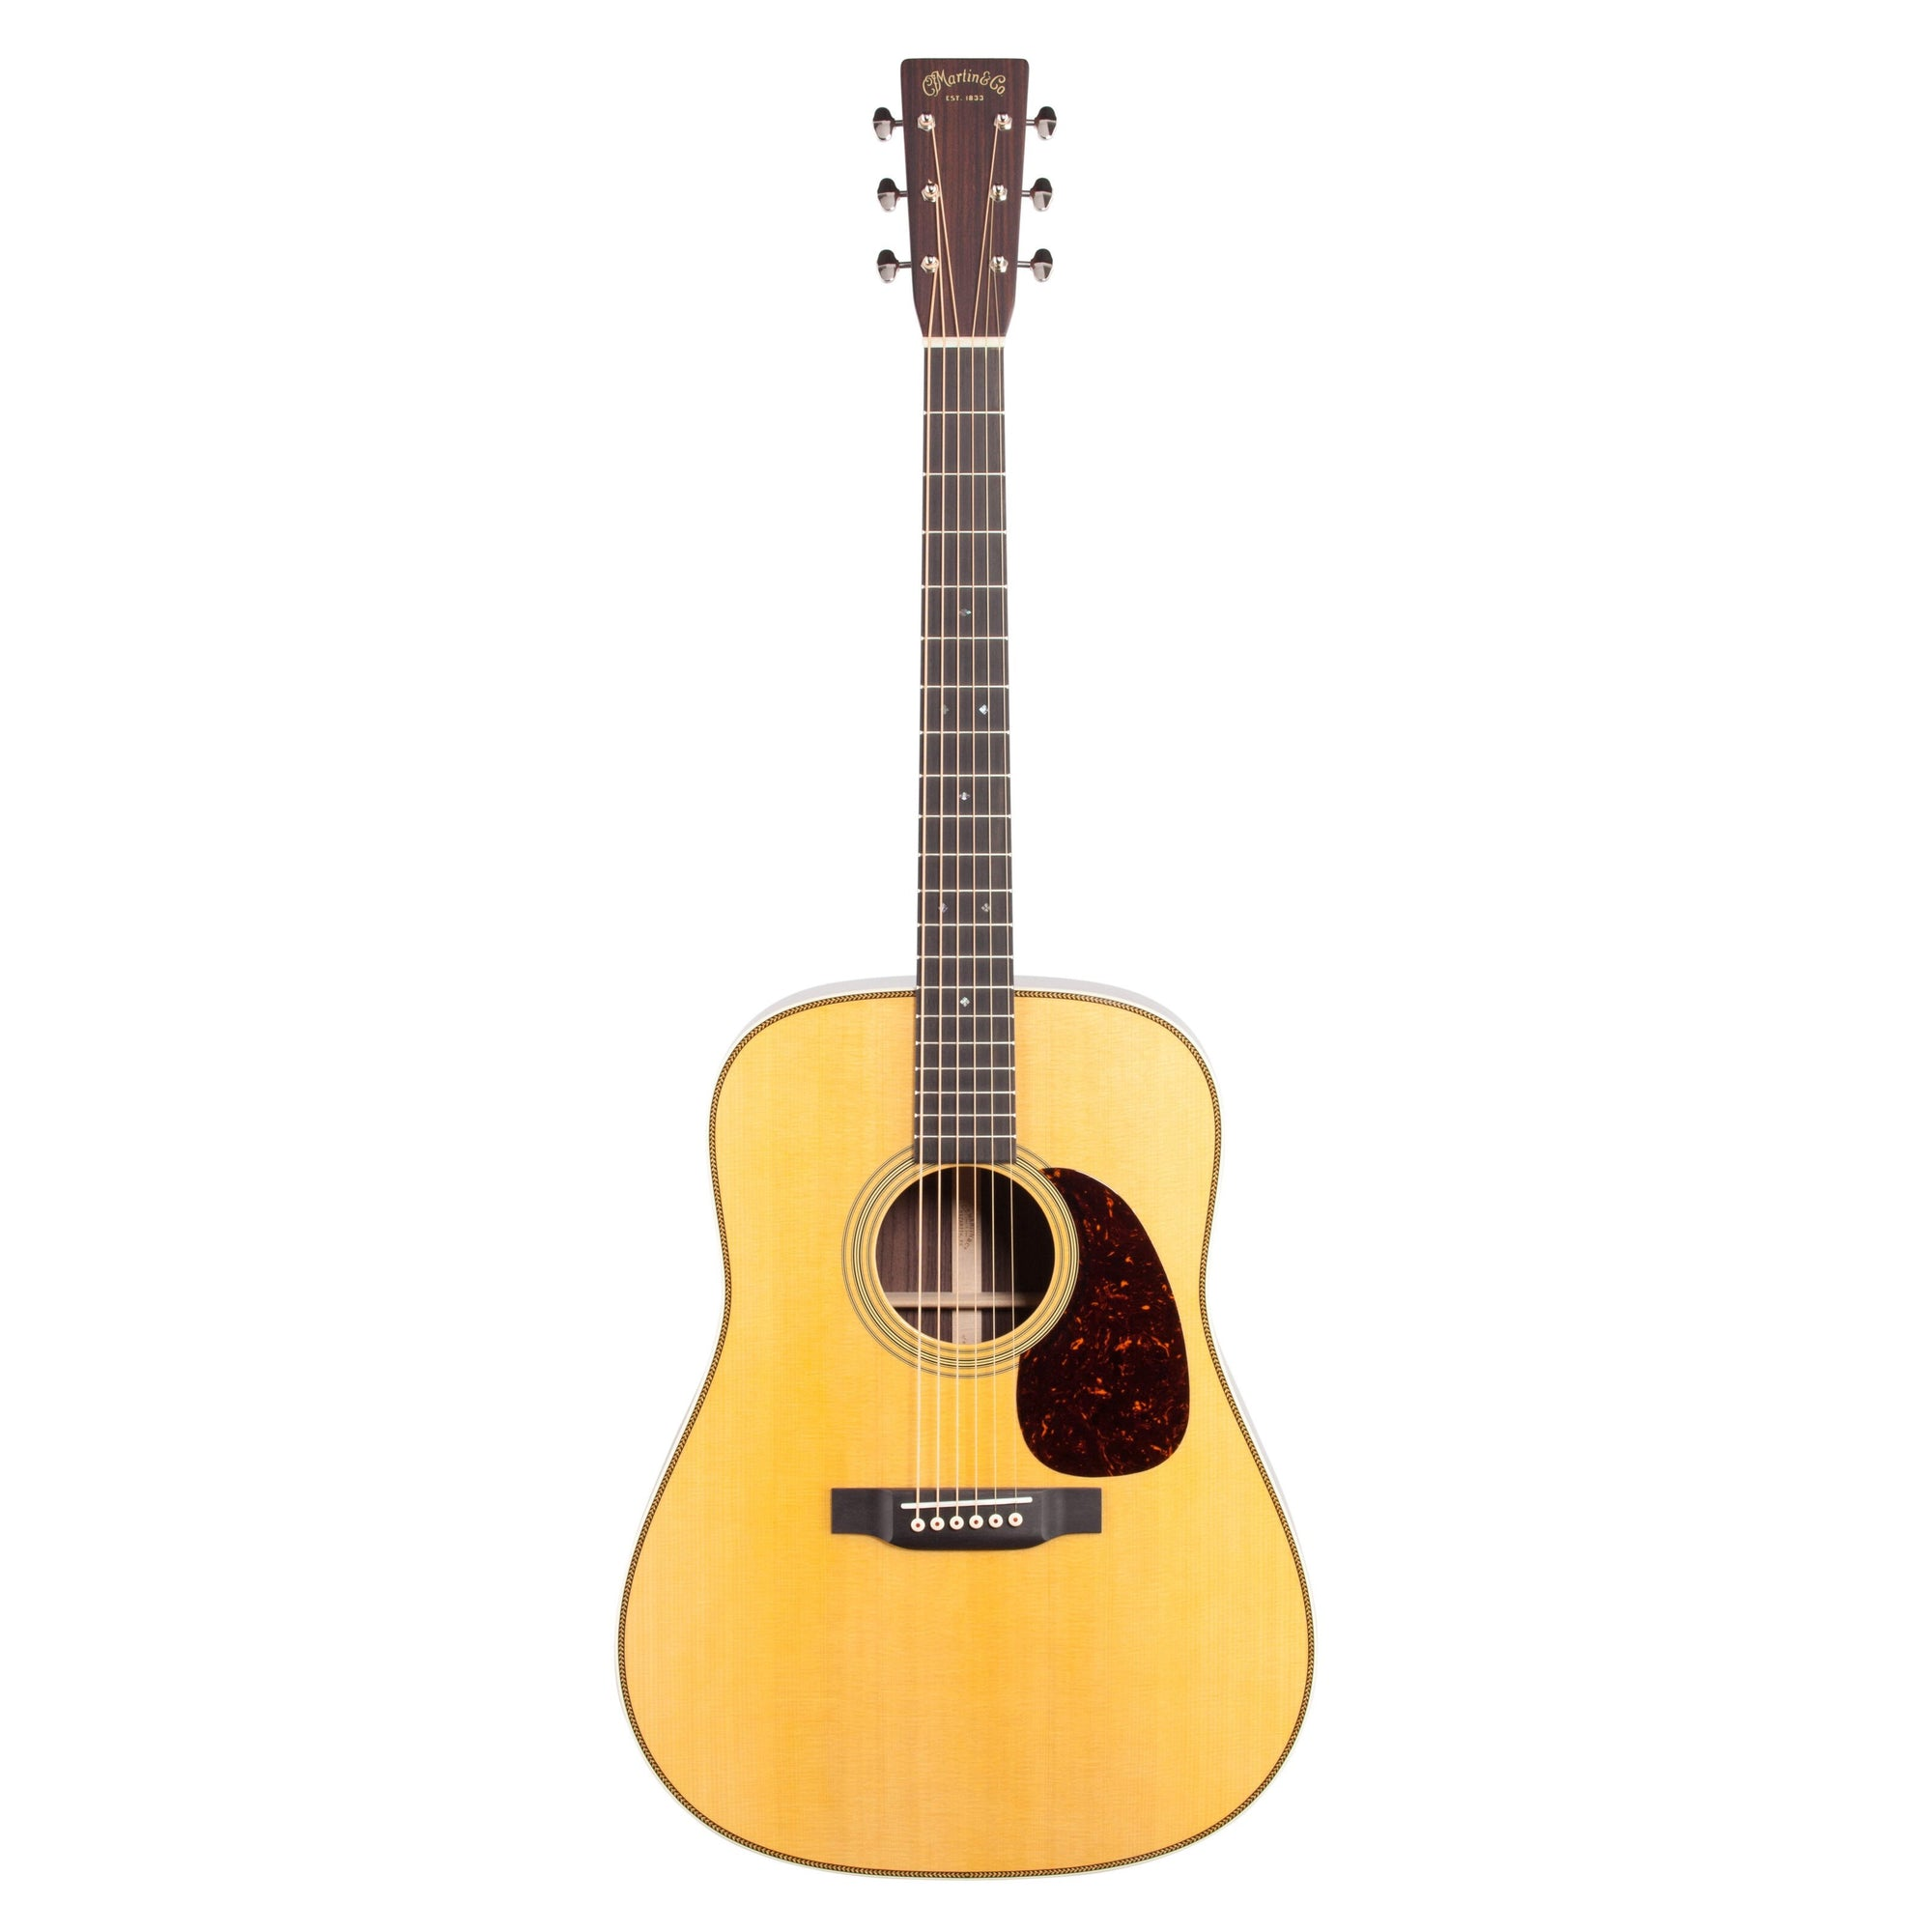 Martin HD-28 Redesign 2018 Acoustic Guitar (with Case), Natural